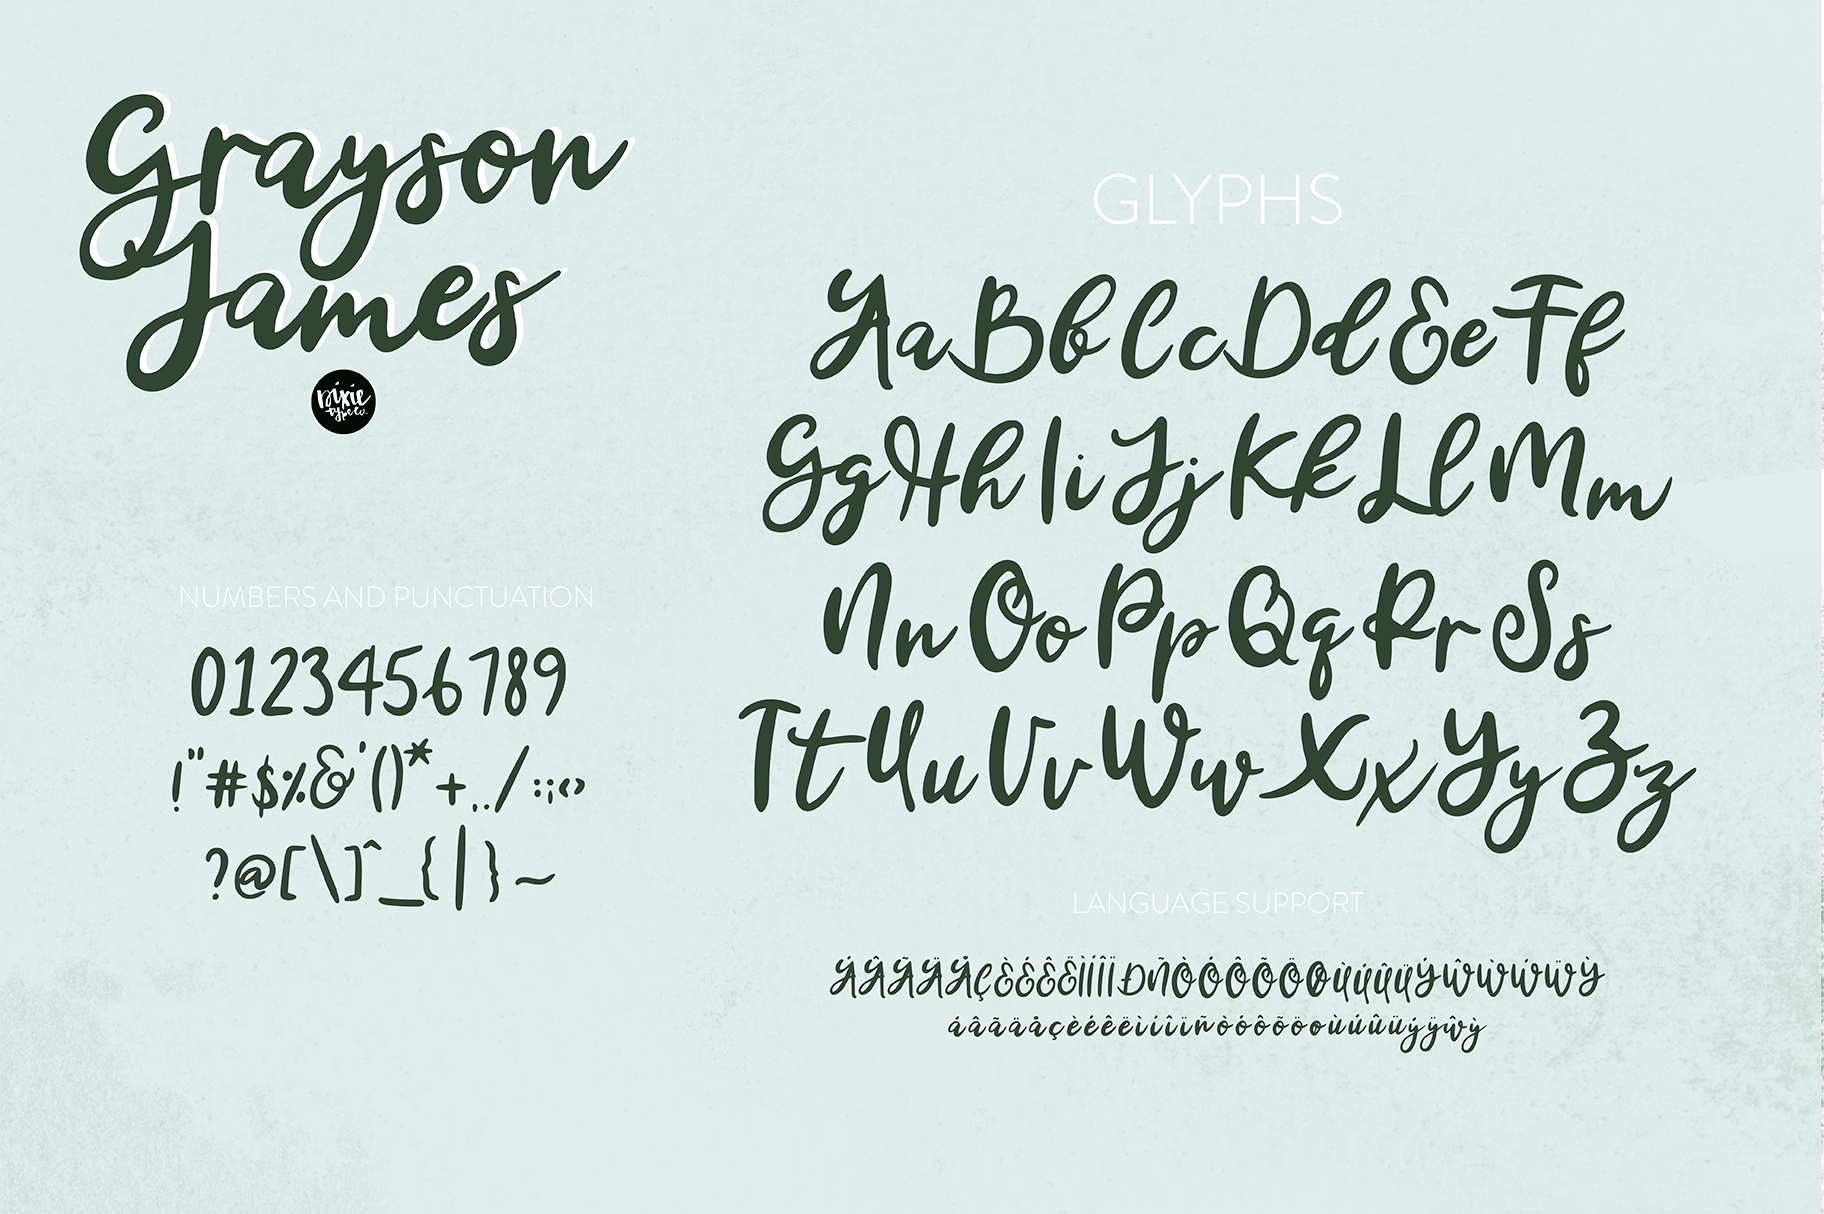 GRAYSON JAMES Bold Script .OTF Font example image 5